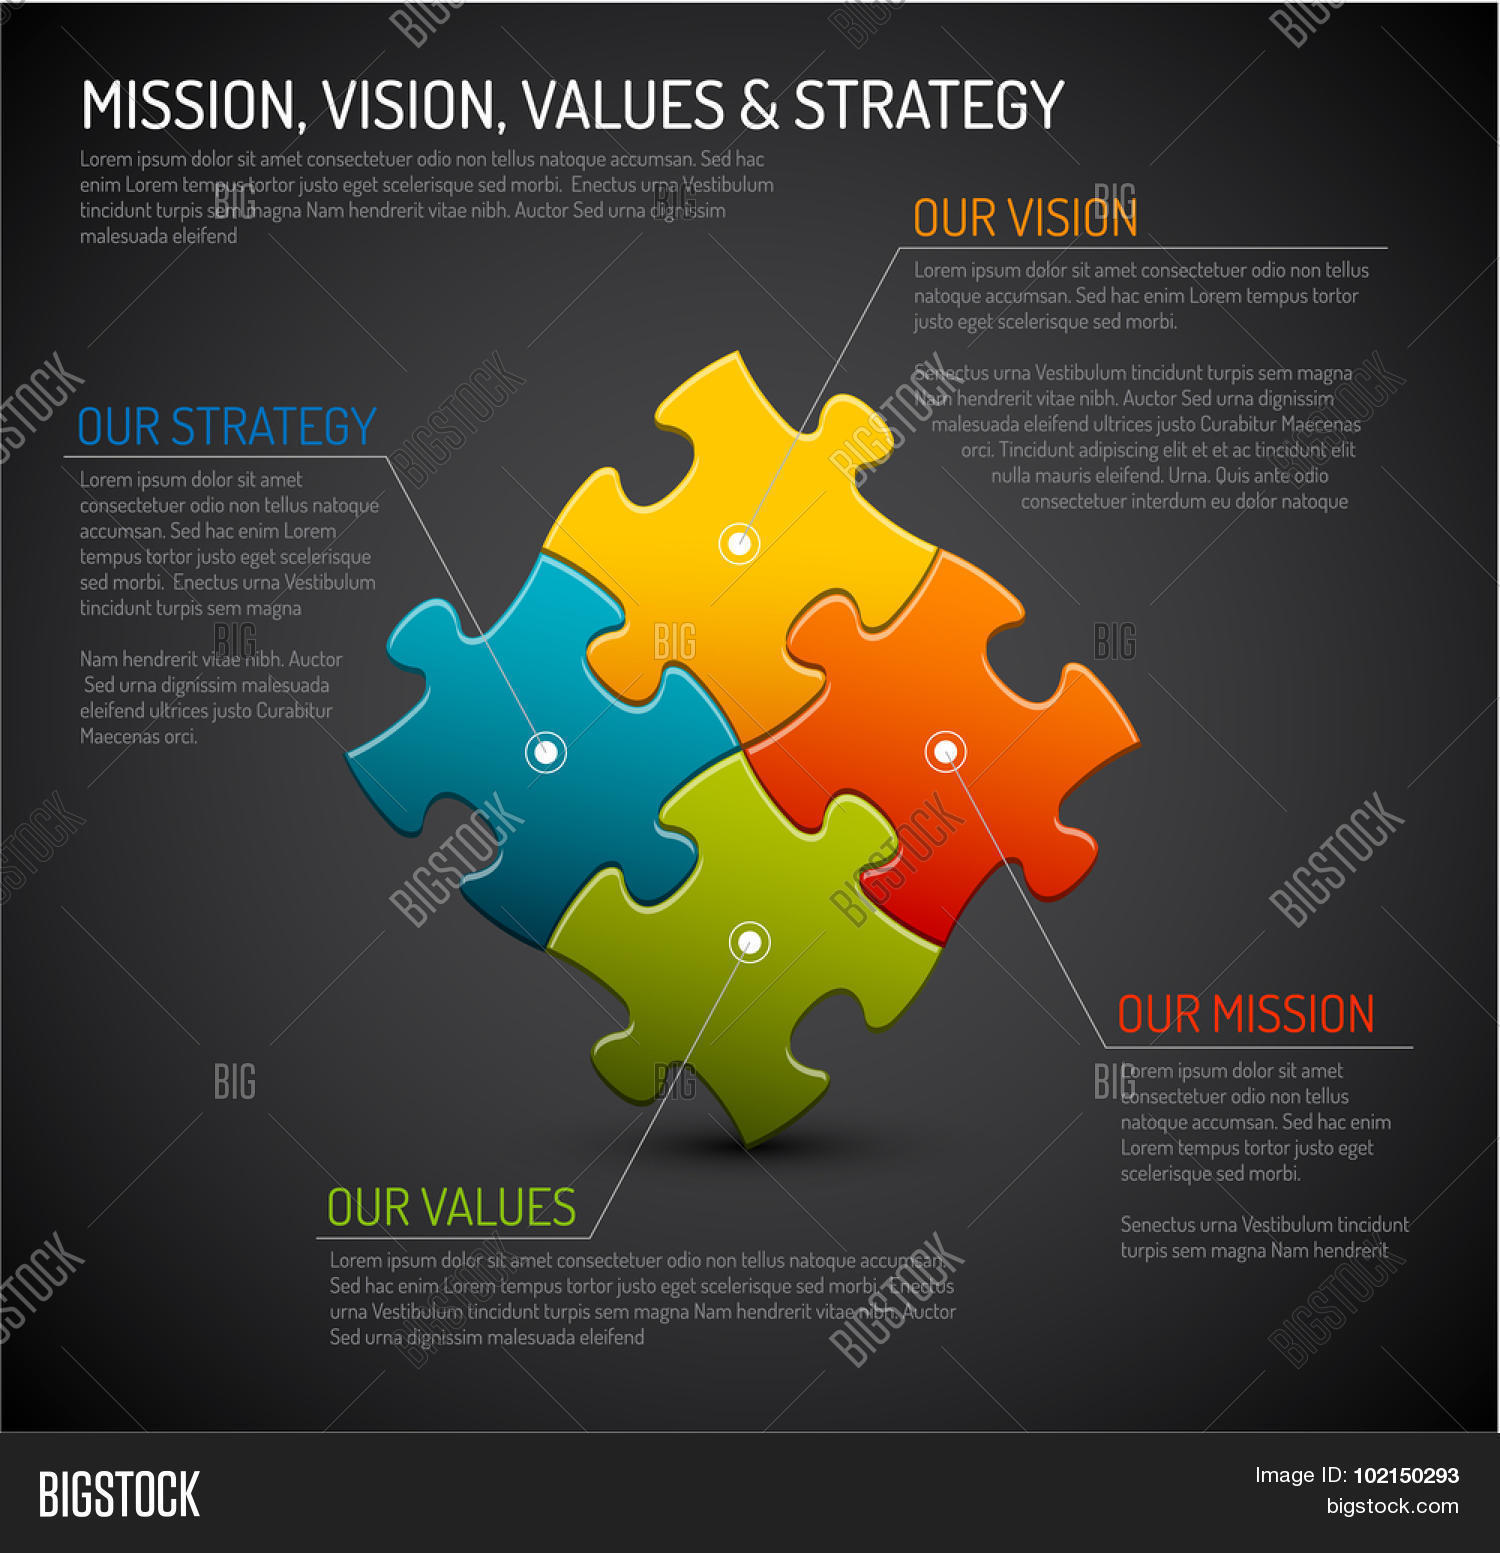 applebees mission vision and value